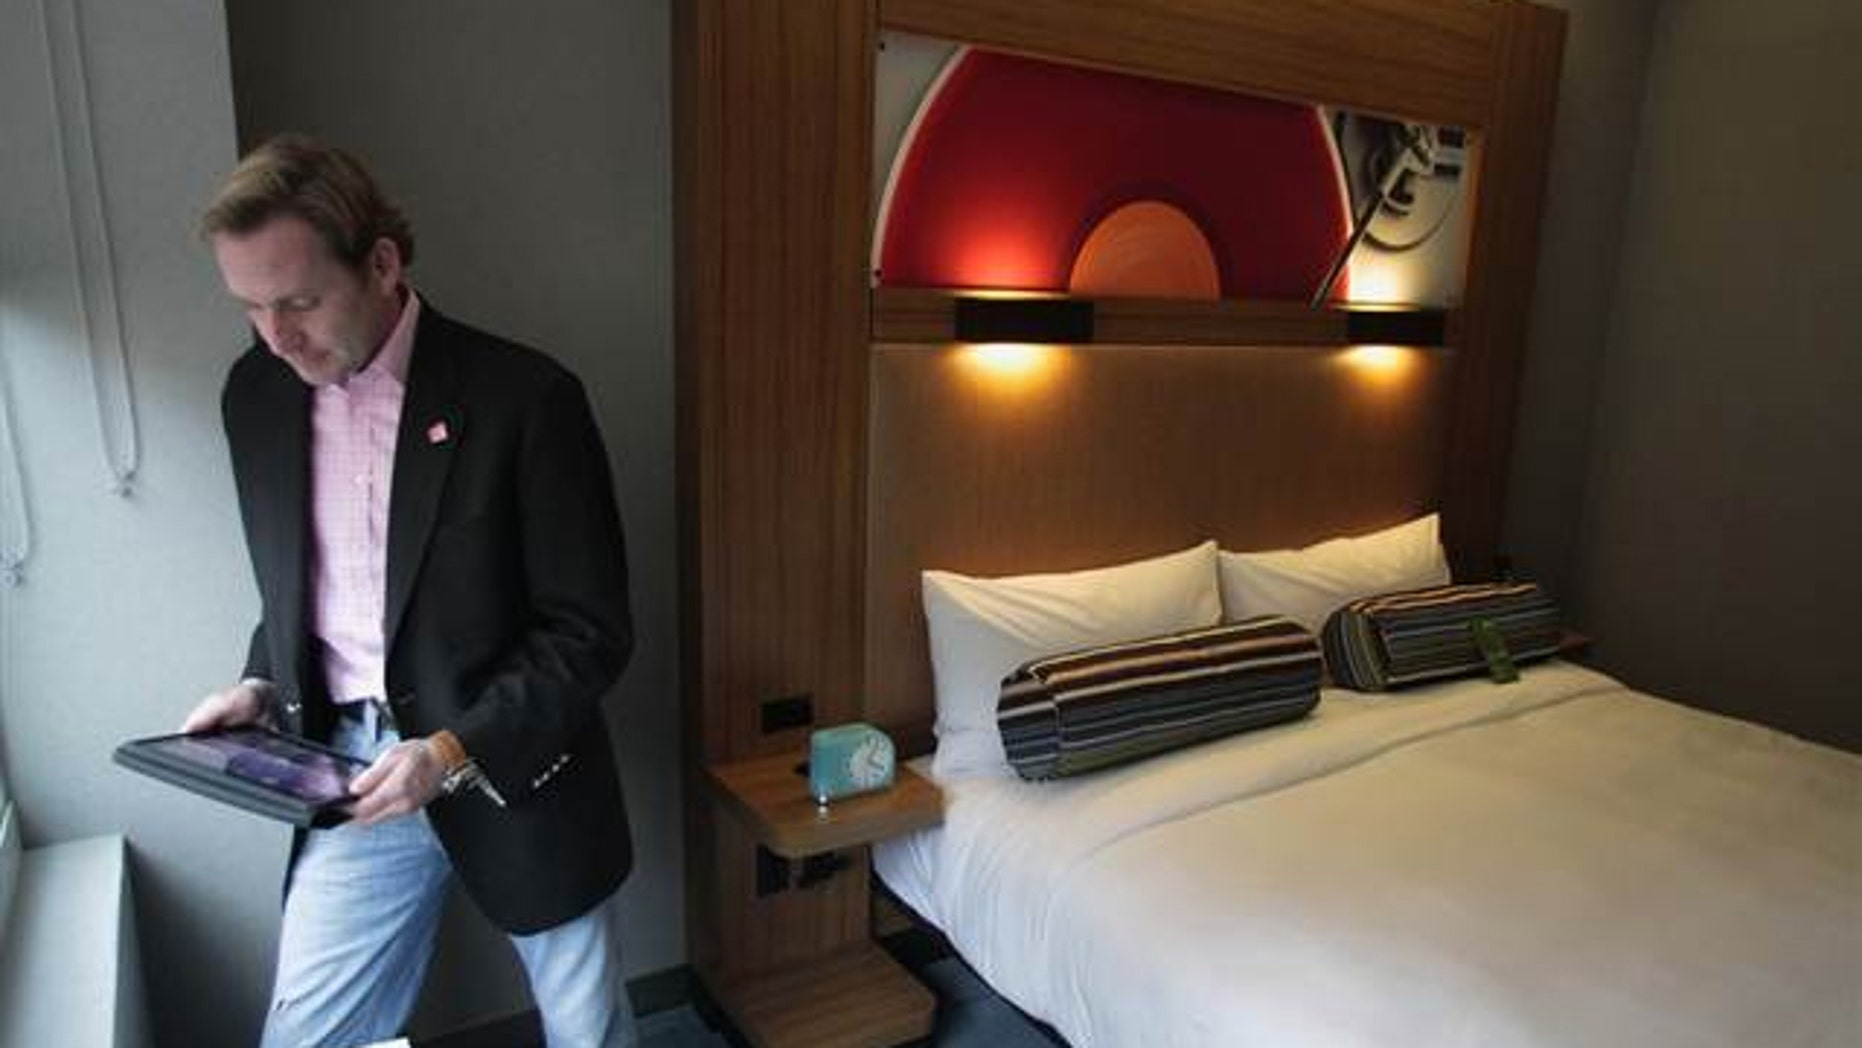 Brian McGuinness, senior vice president of specialty select brands for Starwood, in the Aloft hotel in Harlem, NYC.